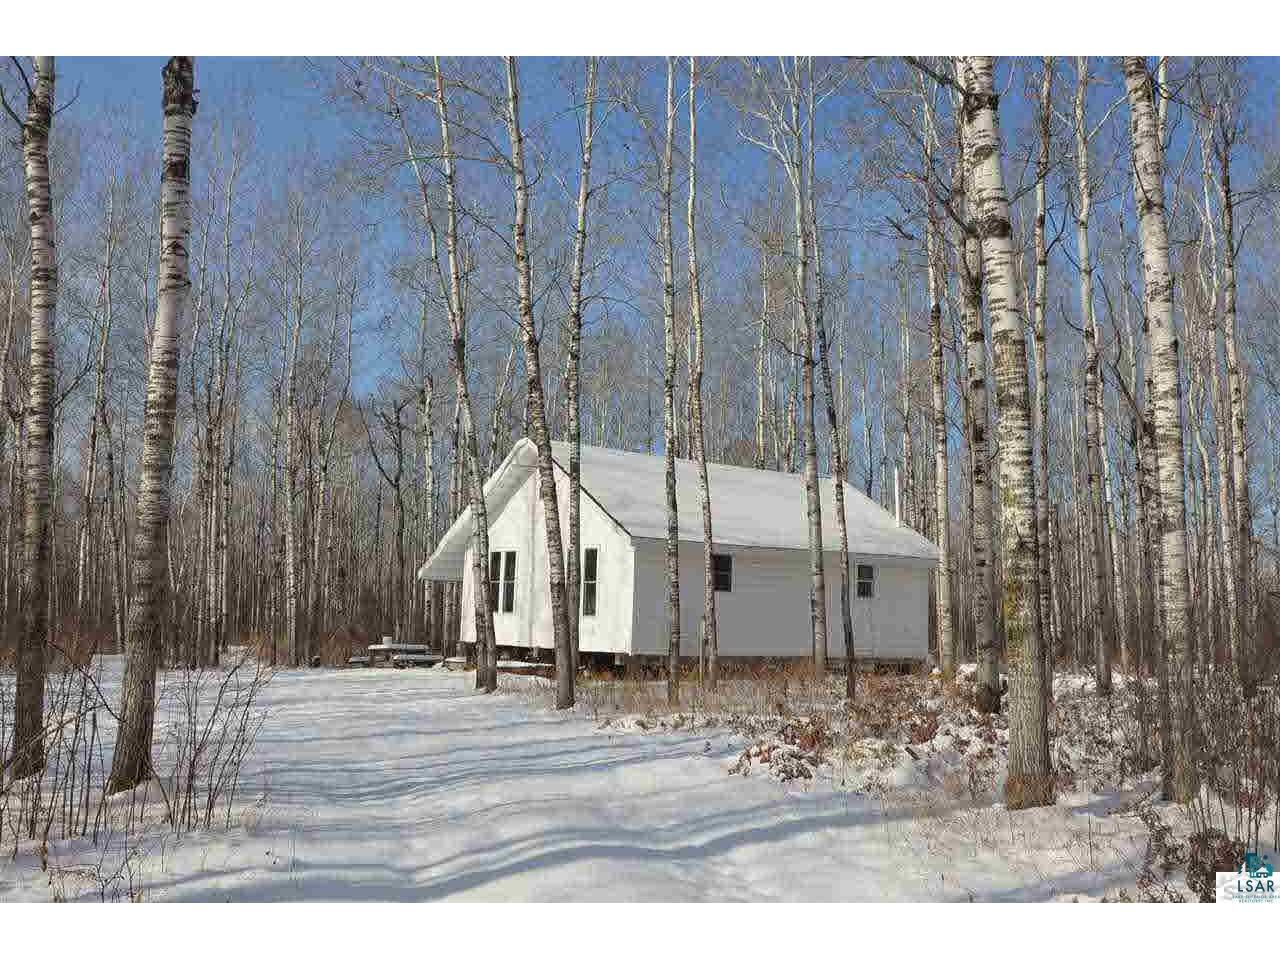 2677 S Camp Amnicon Rd South Range WI 54874 6069923 image1